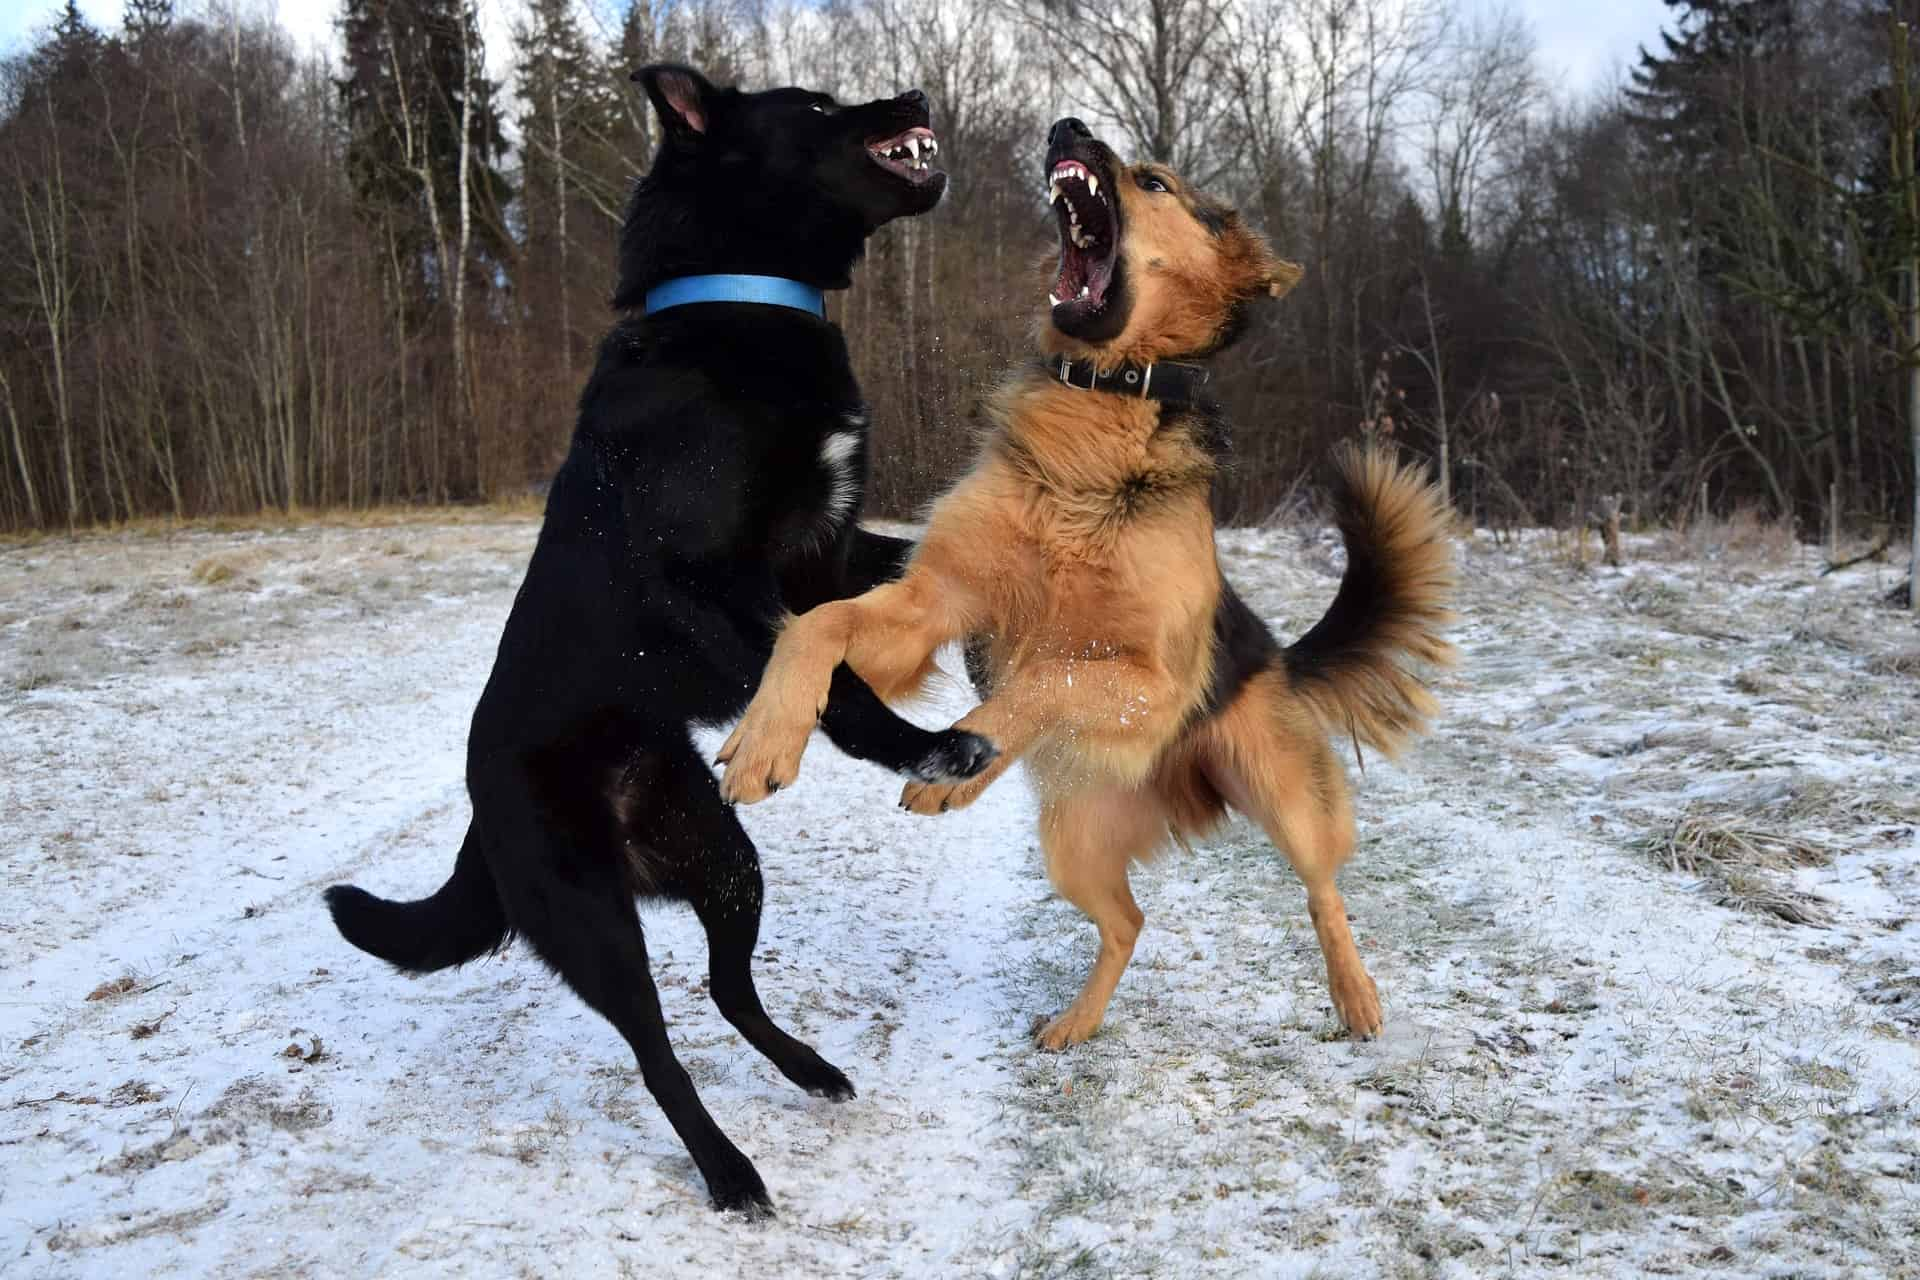 There Are Many Conditions That Can Cause Unusual Or Aggressive Behavior In Dogs